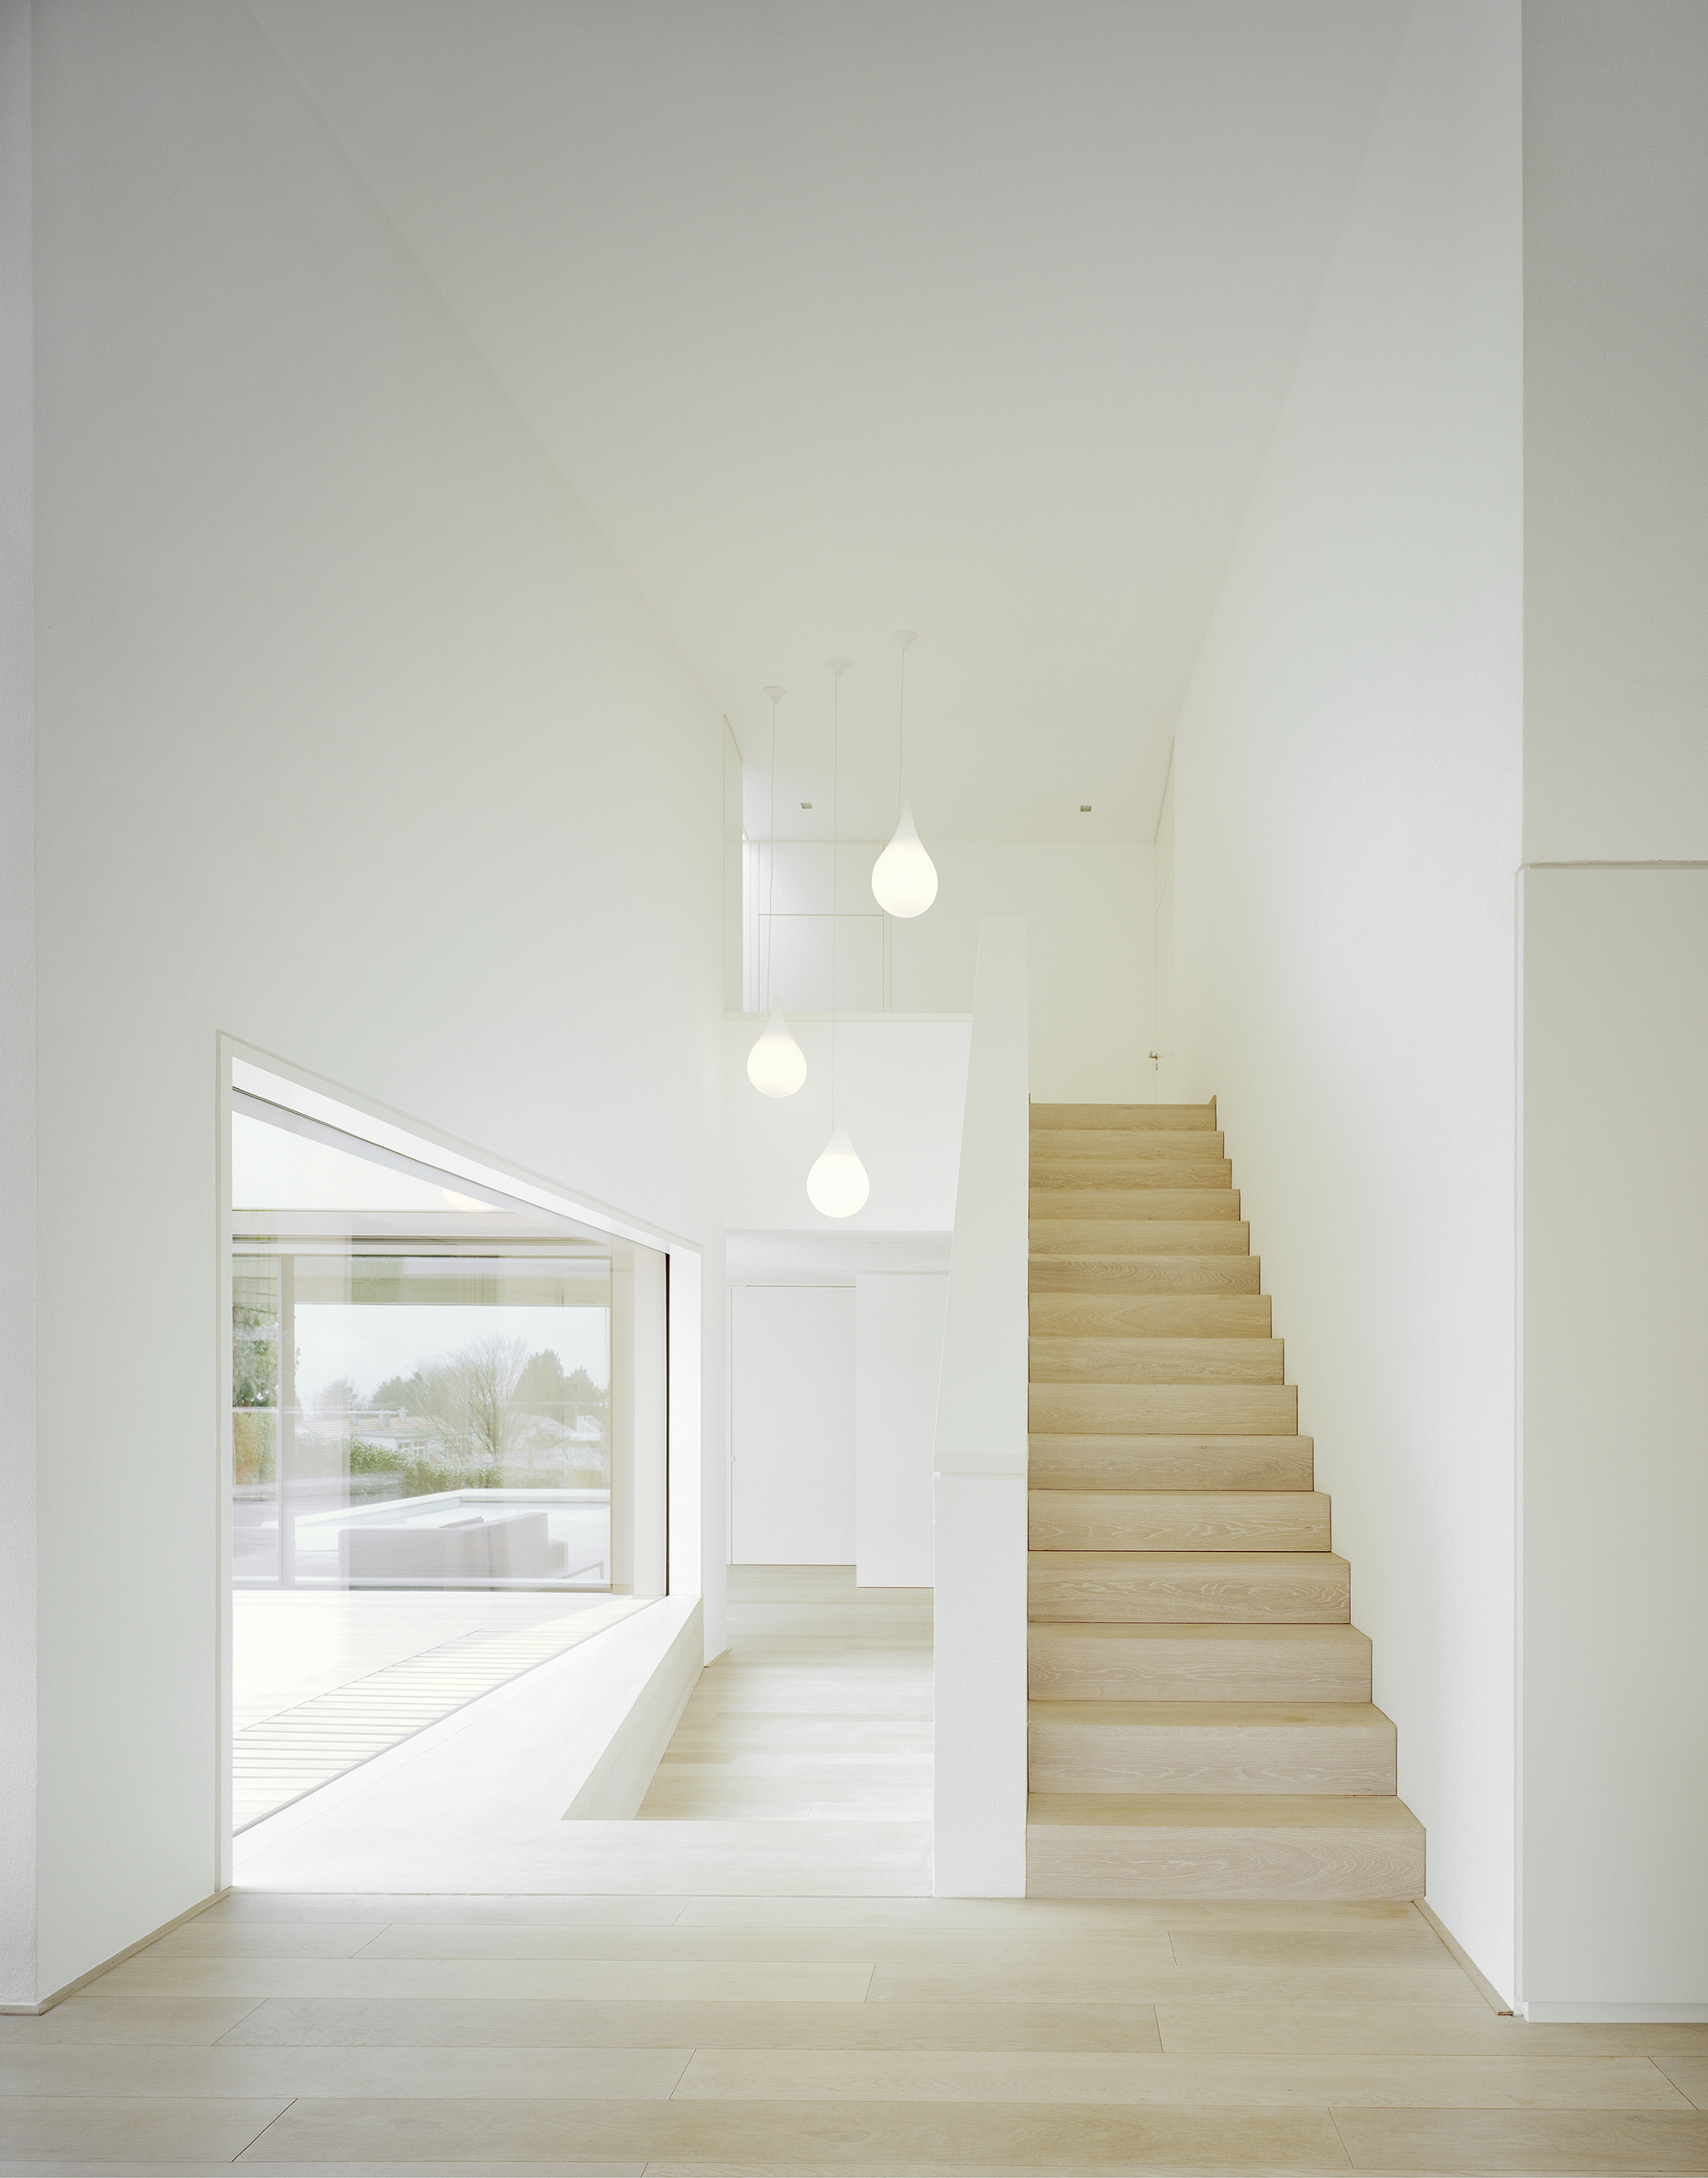 city villa s3 by steimle architekten 17 Villa S3 by Steimle Architekten